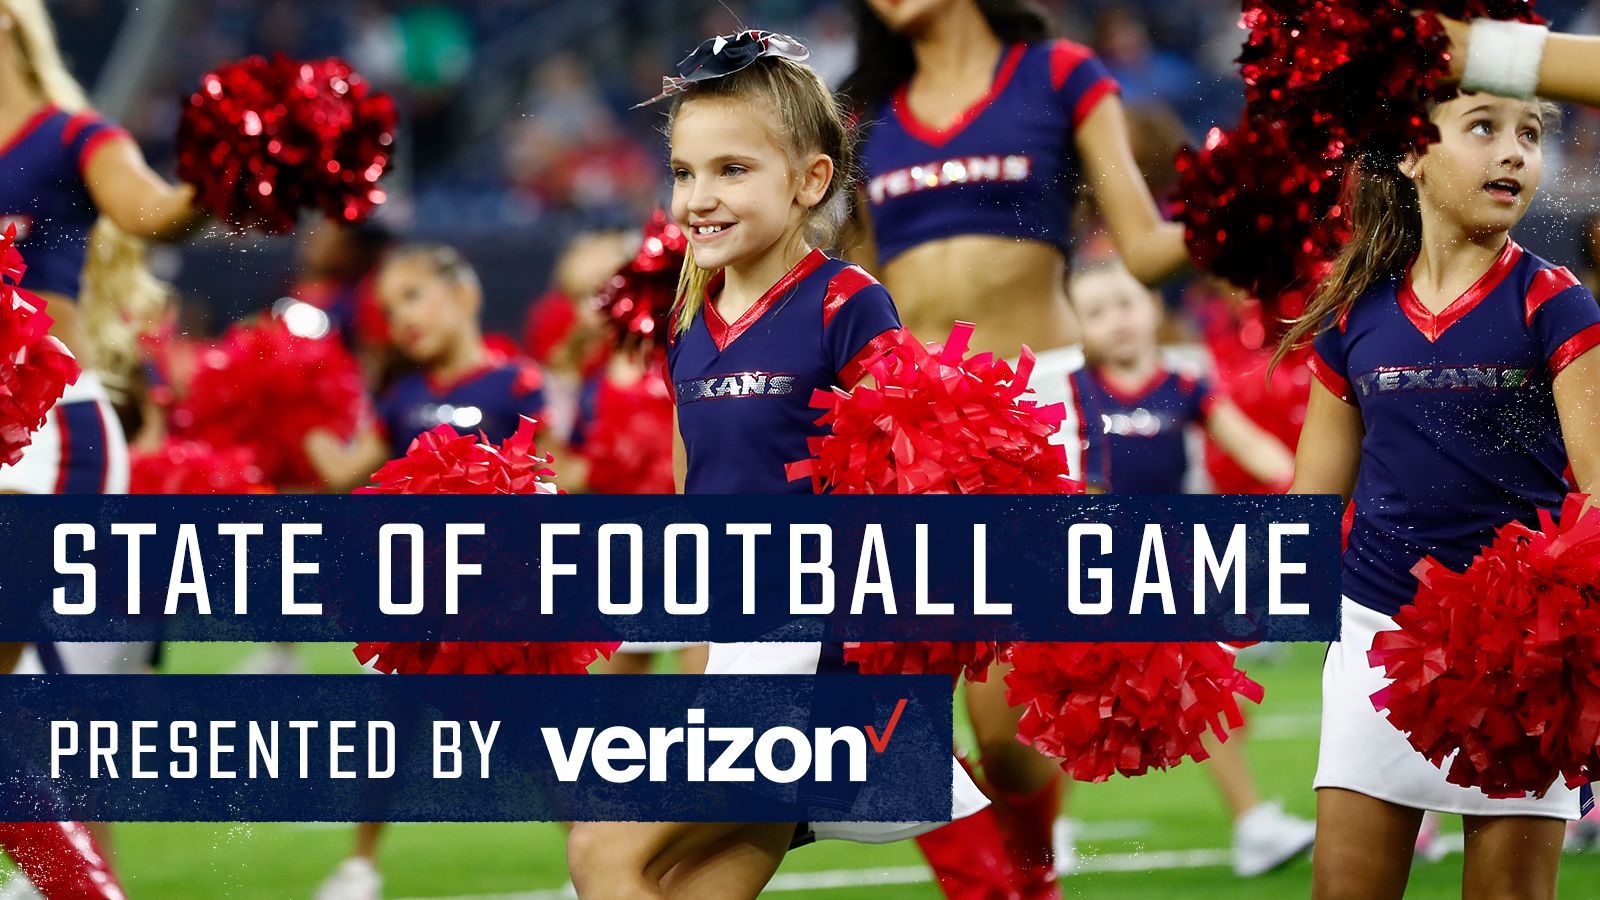 State of Football Game presented by Verizon